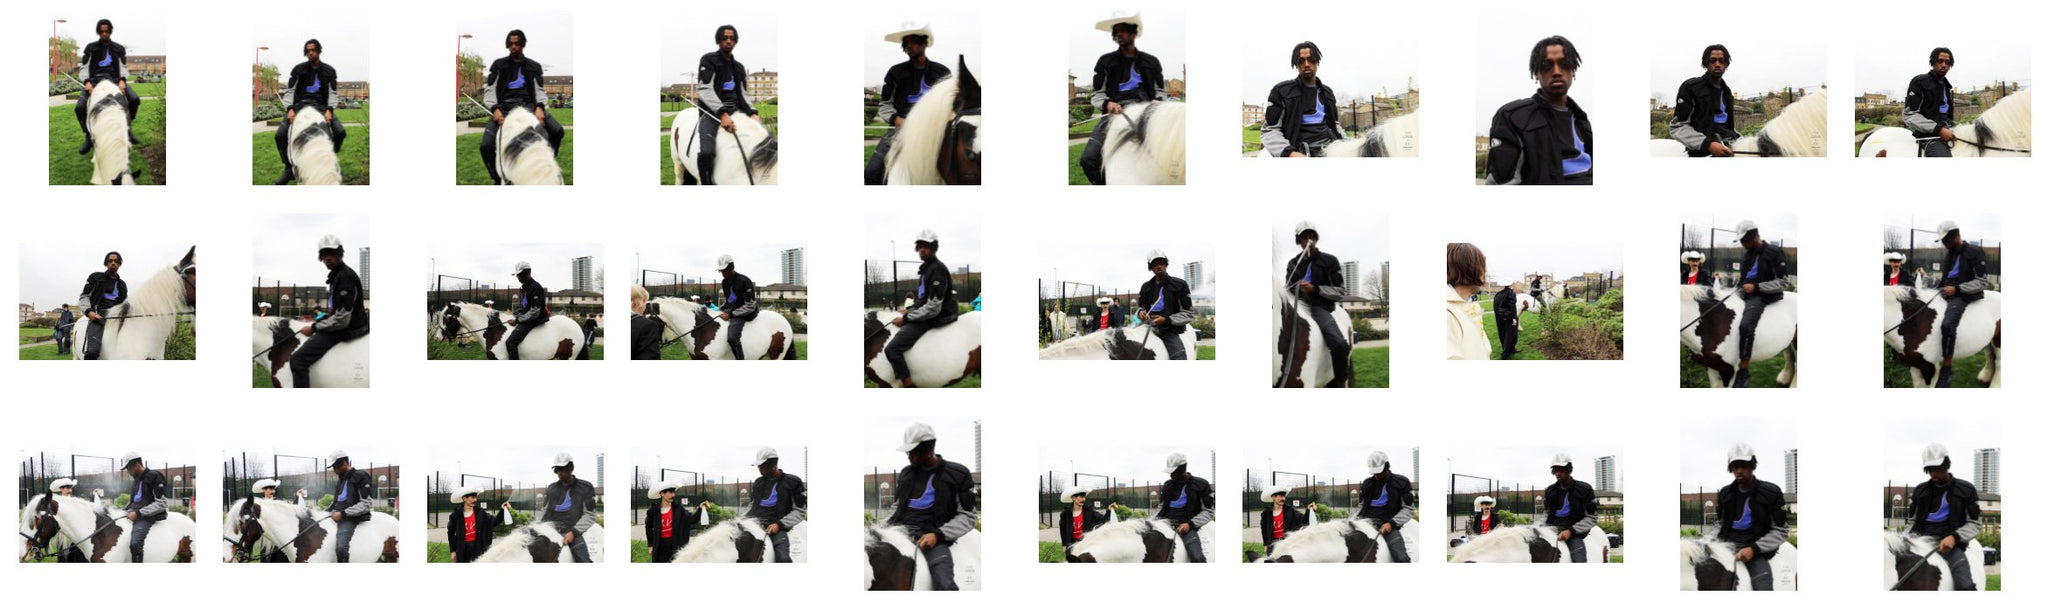 Jahsiri on Draft Horse, Part 2 (in collab. with The Lover, London) - Riding.Vision